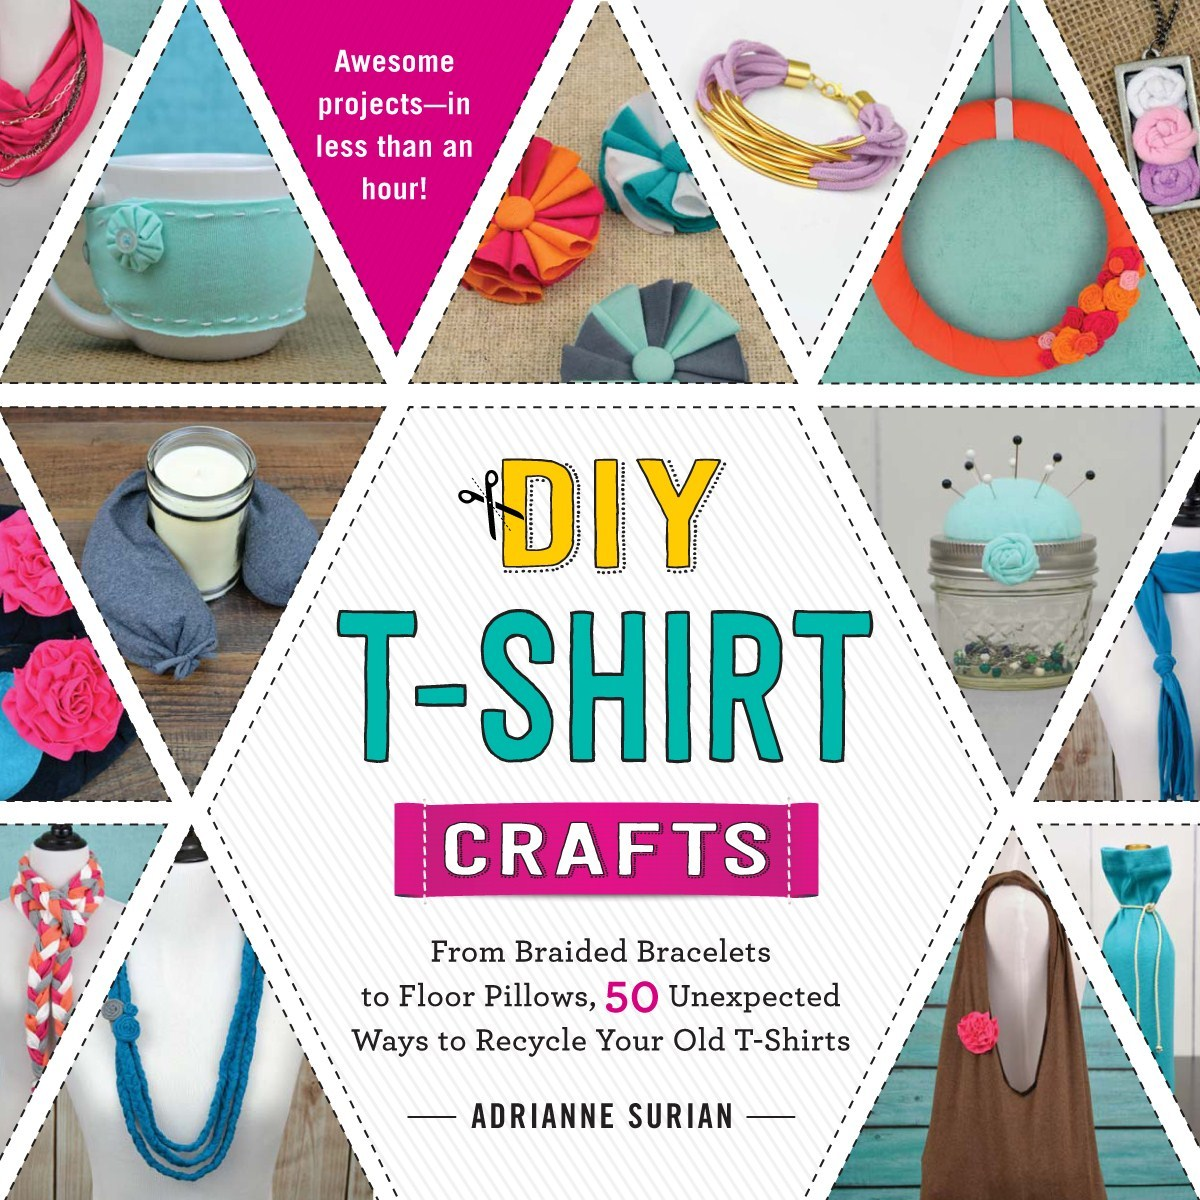 DIY T-Shirt Crafts - Happy Hour Projects